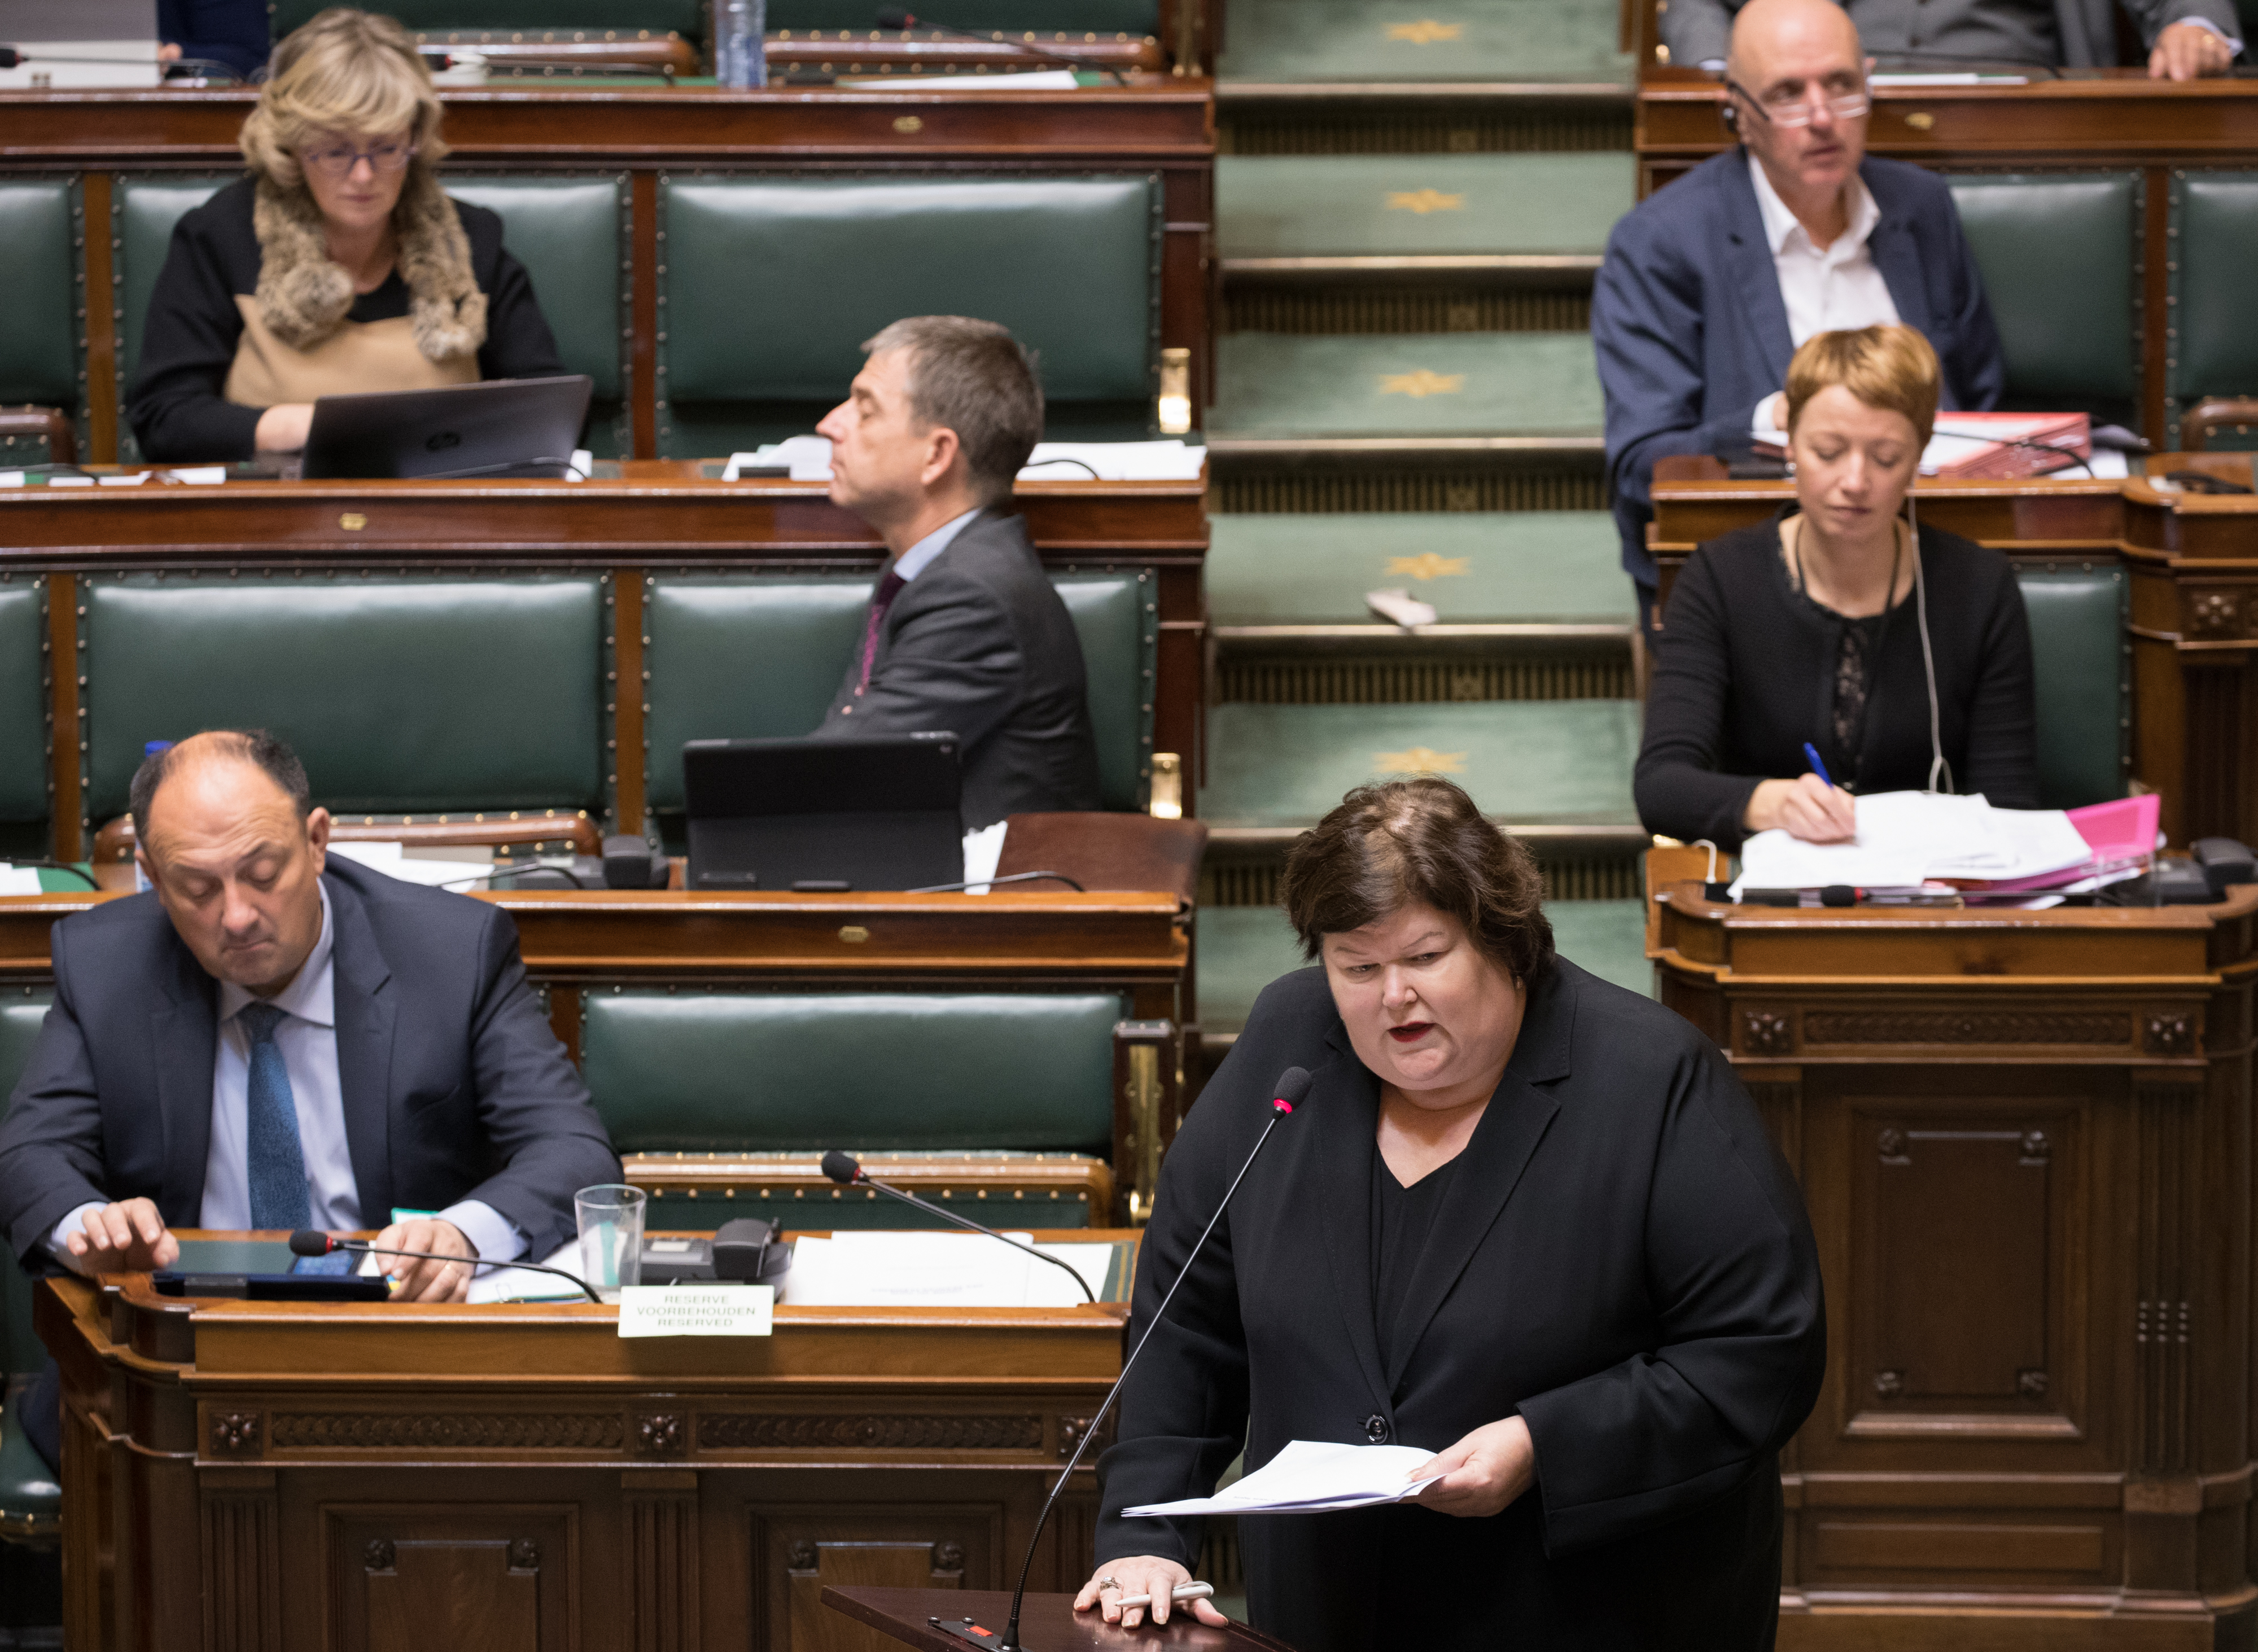 Minister of Health and Social Affairs Maggie De Block delivers a speech at a plenary session of the Chamber at the federal parliament, in Brussels, Thursday 02 February 2017. BELGA PHOTO BENOIT DOPPAGNE